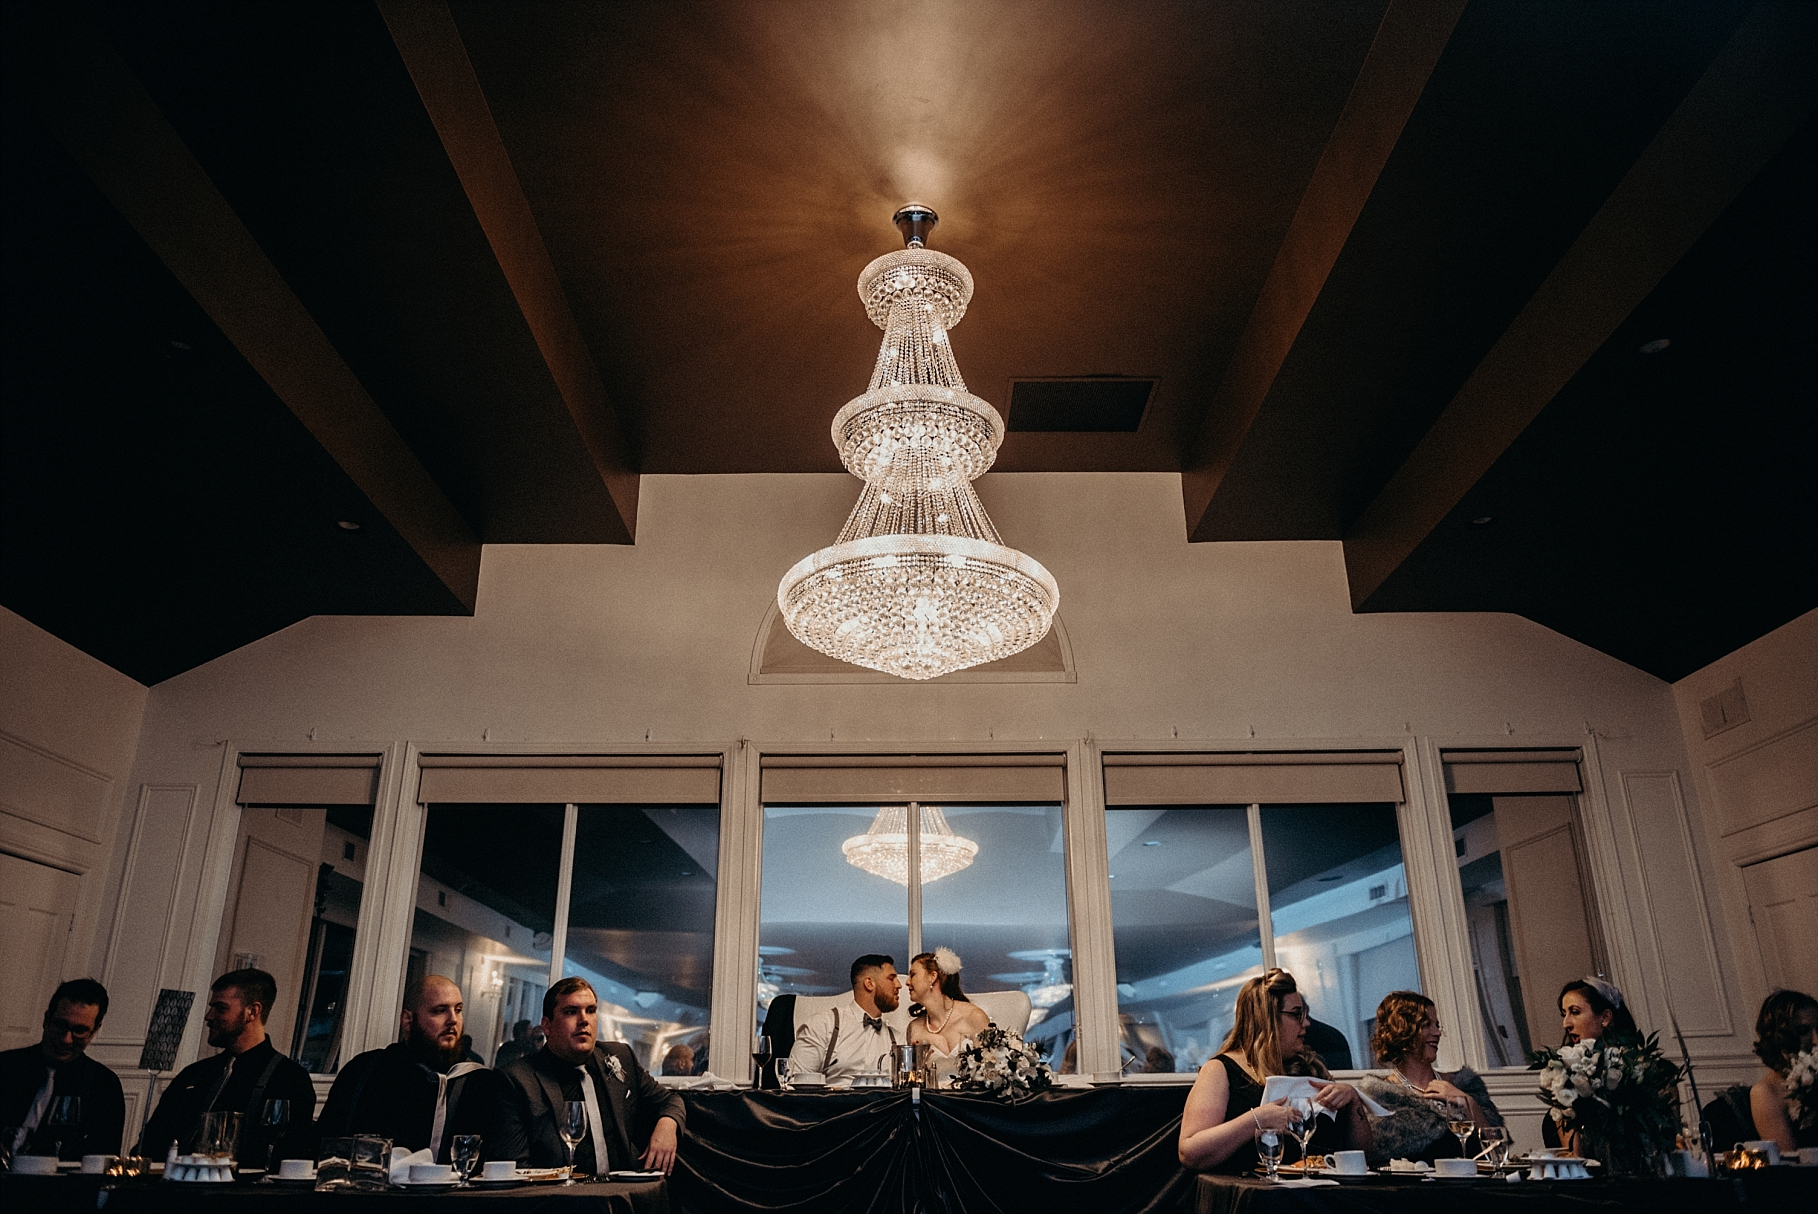 Orchard View Wedding by Mocha Tree Studios Ottawa Wedding and Engagement Photographer and Videographer Dark Moody Intimate Authentic Modern Romantic Cinematic Best Candid 25